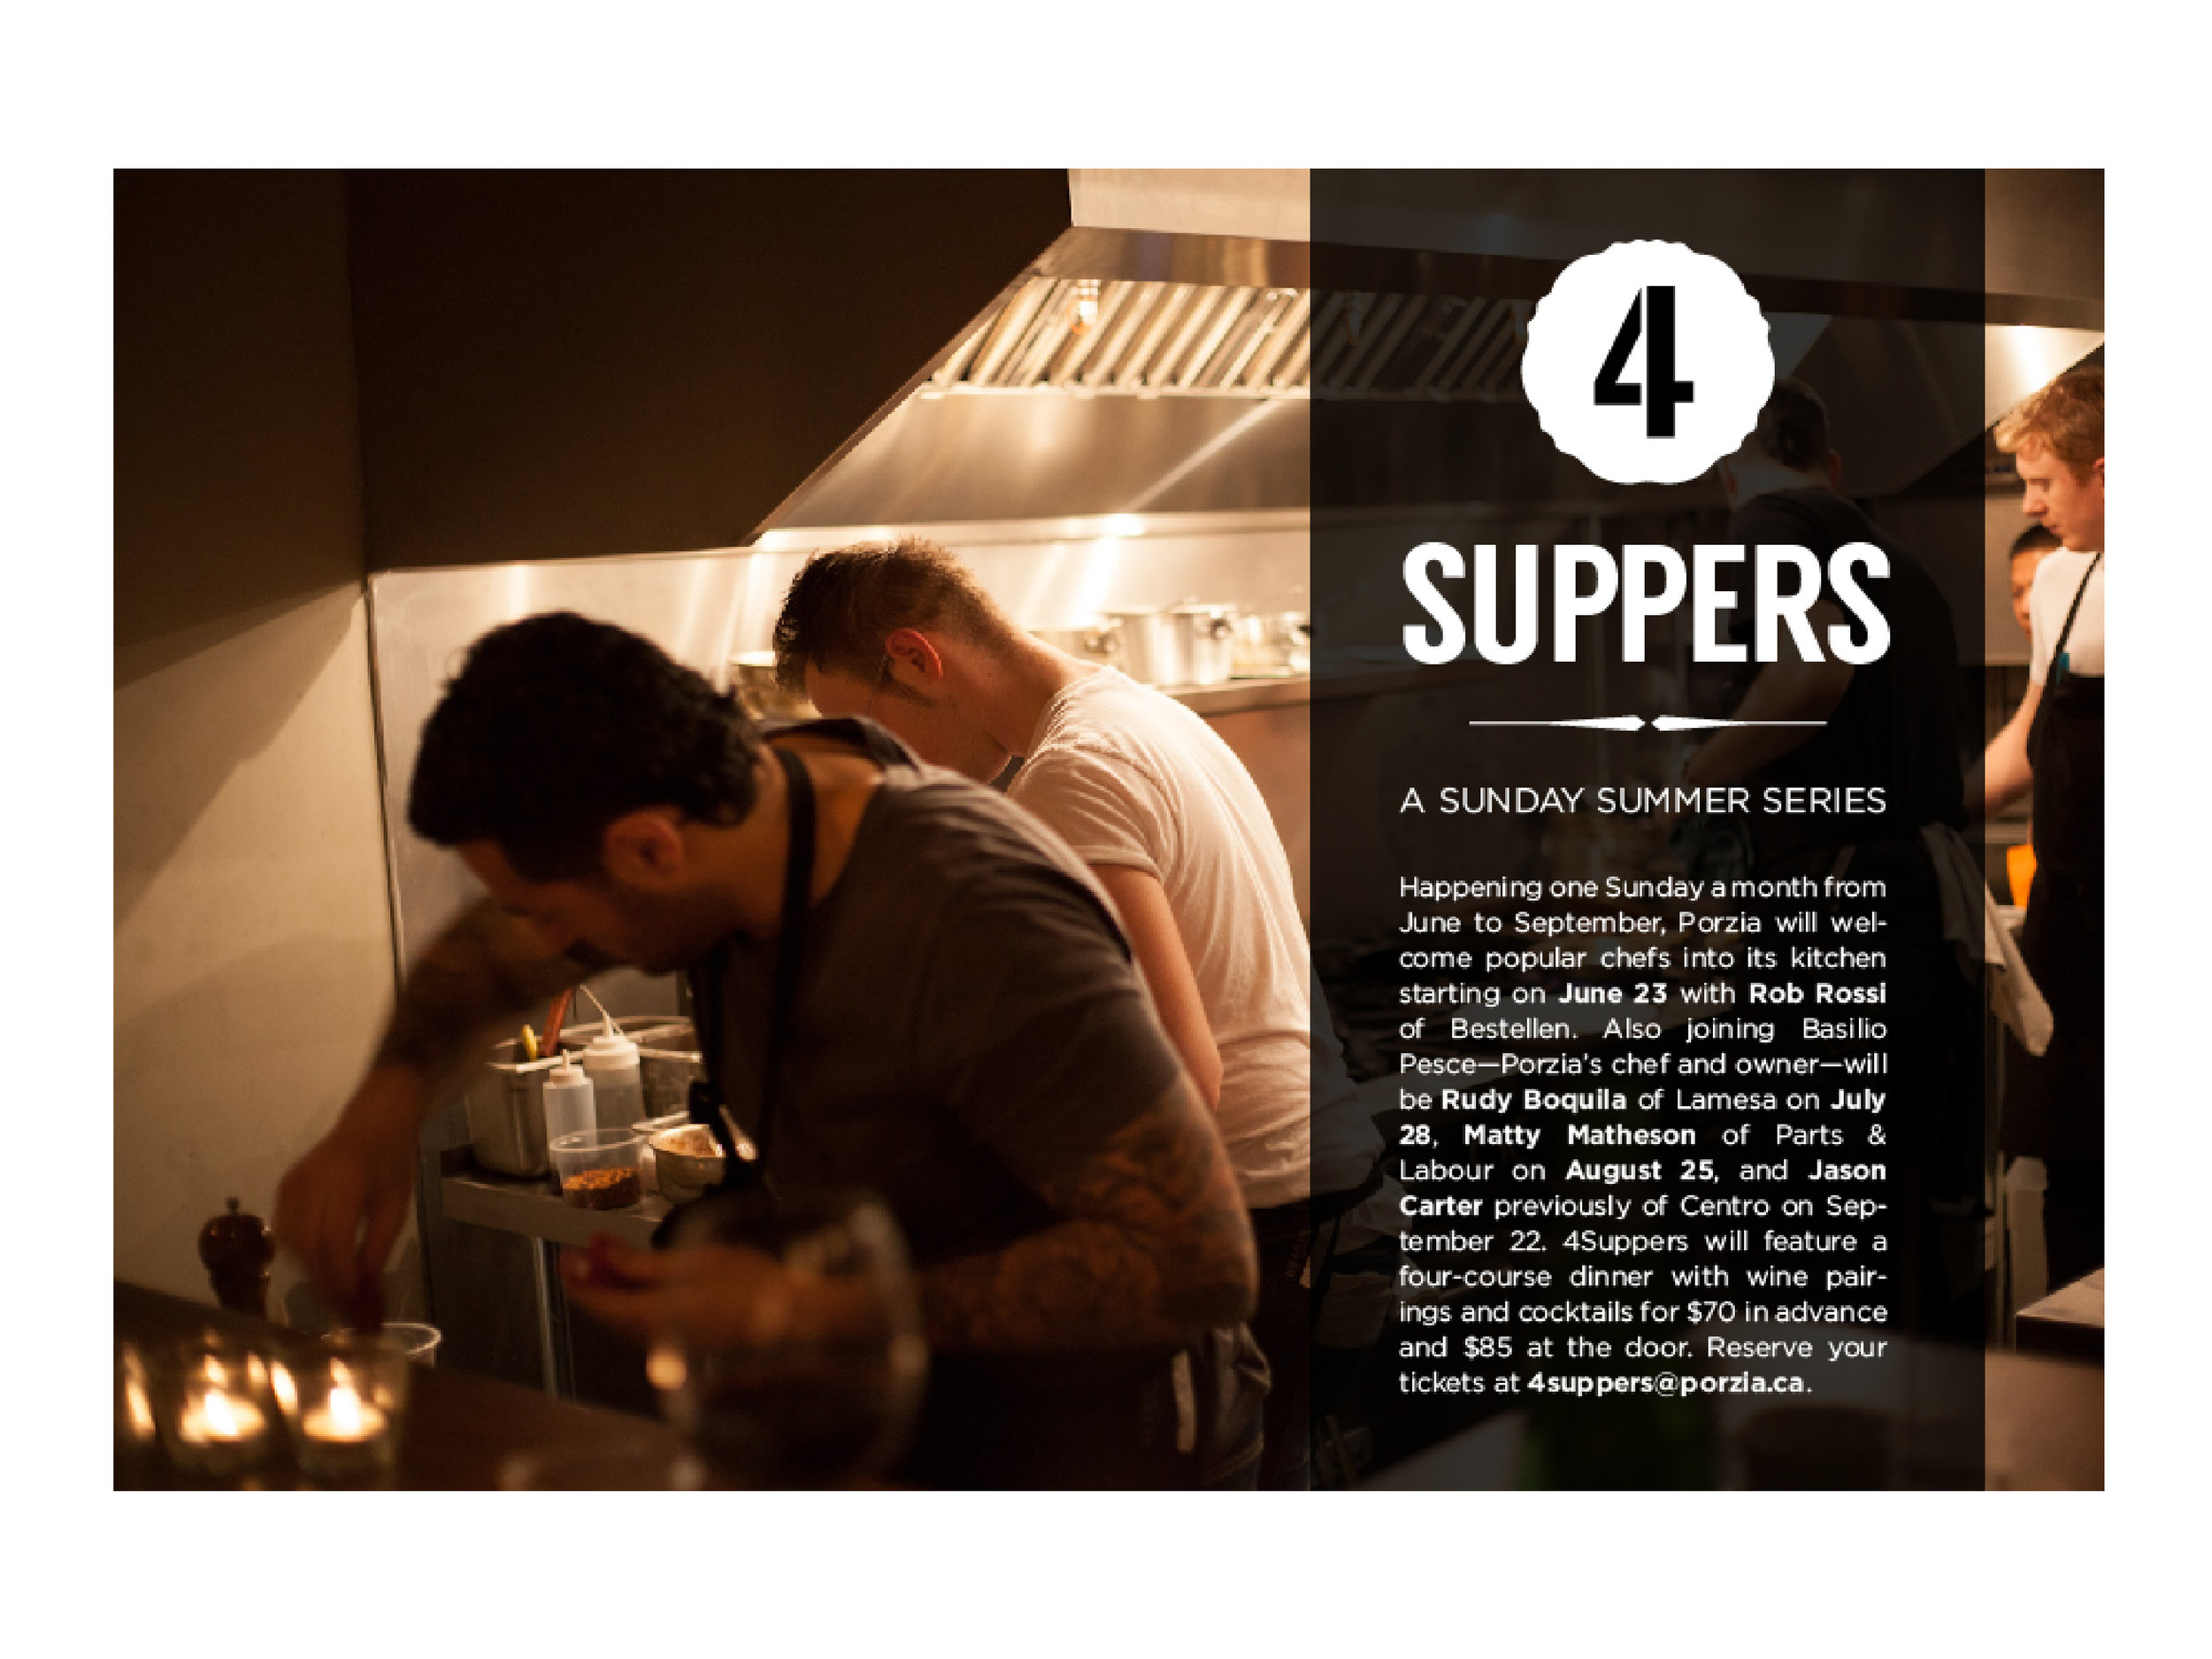 4suppers1-01.jpg